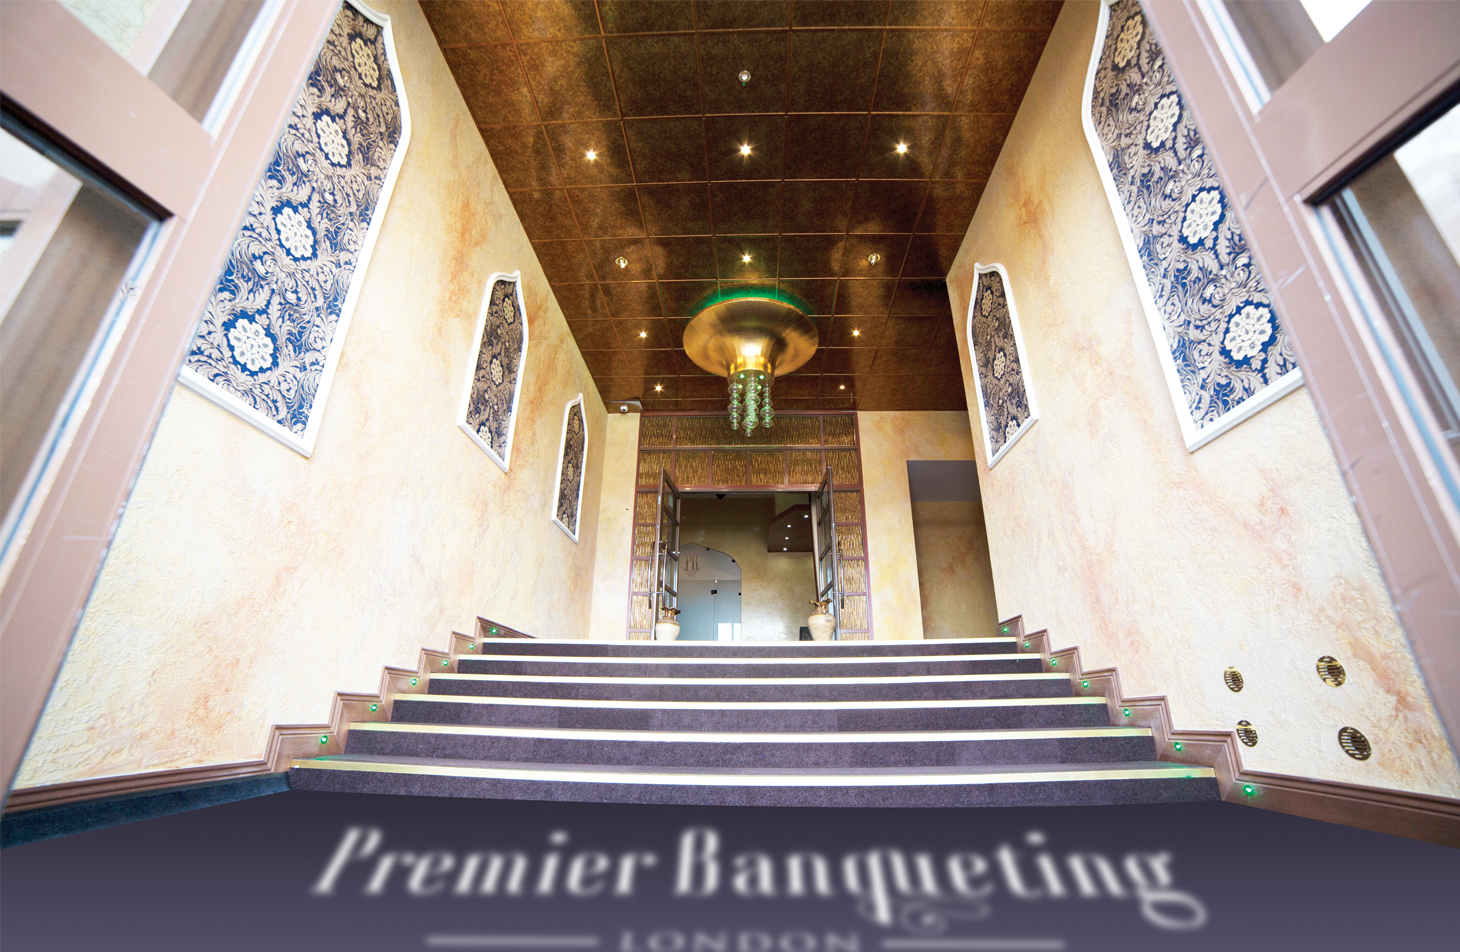 Premier Banqueting London